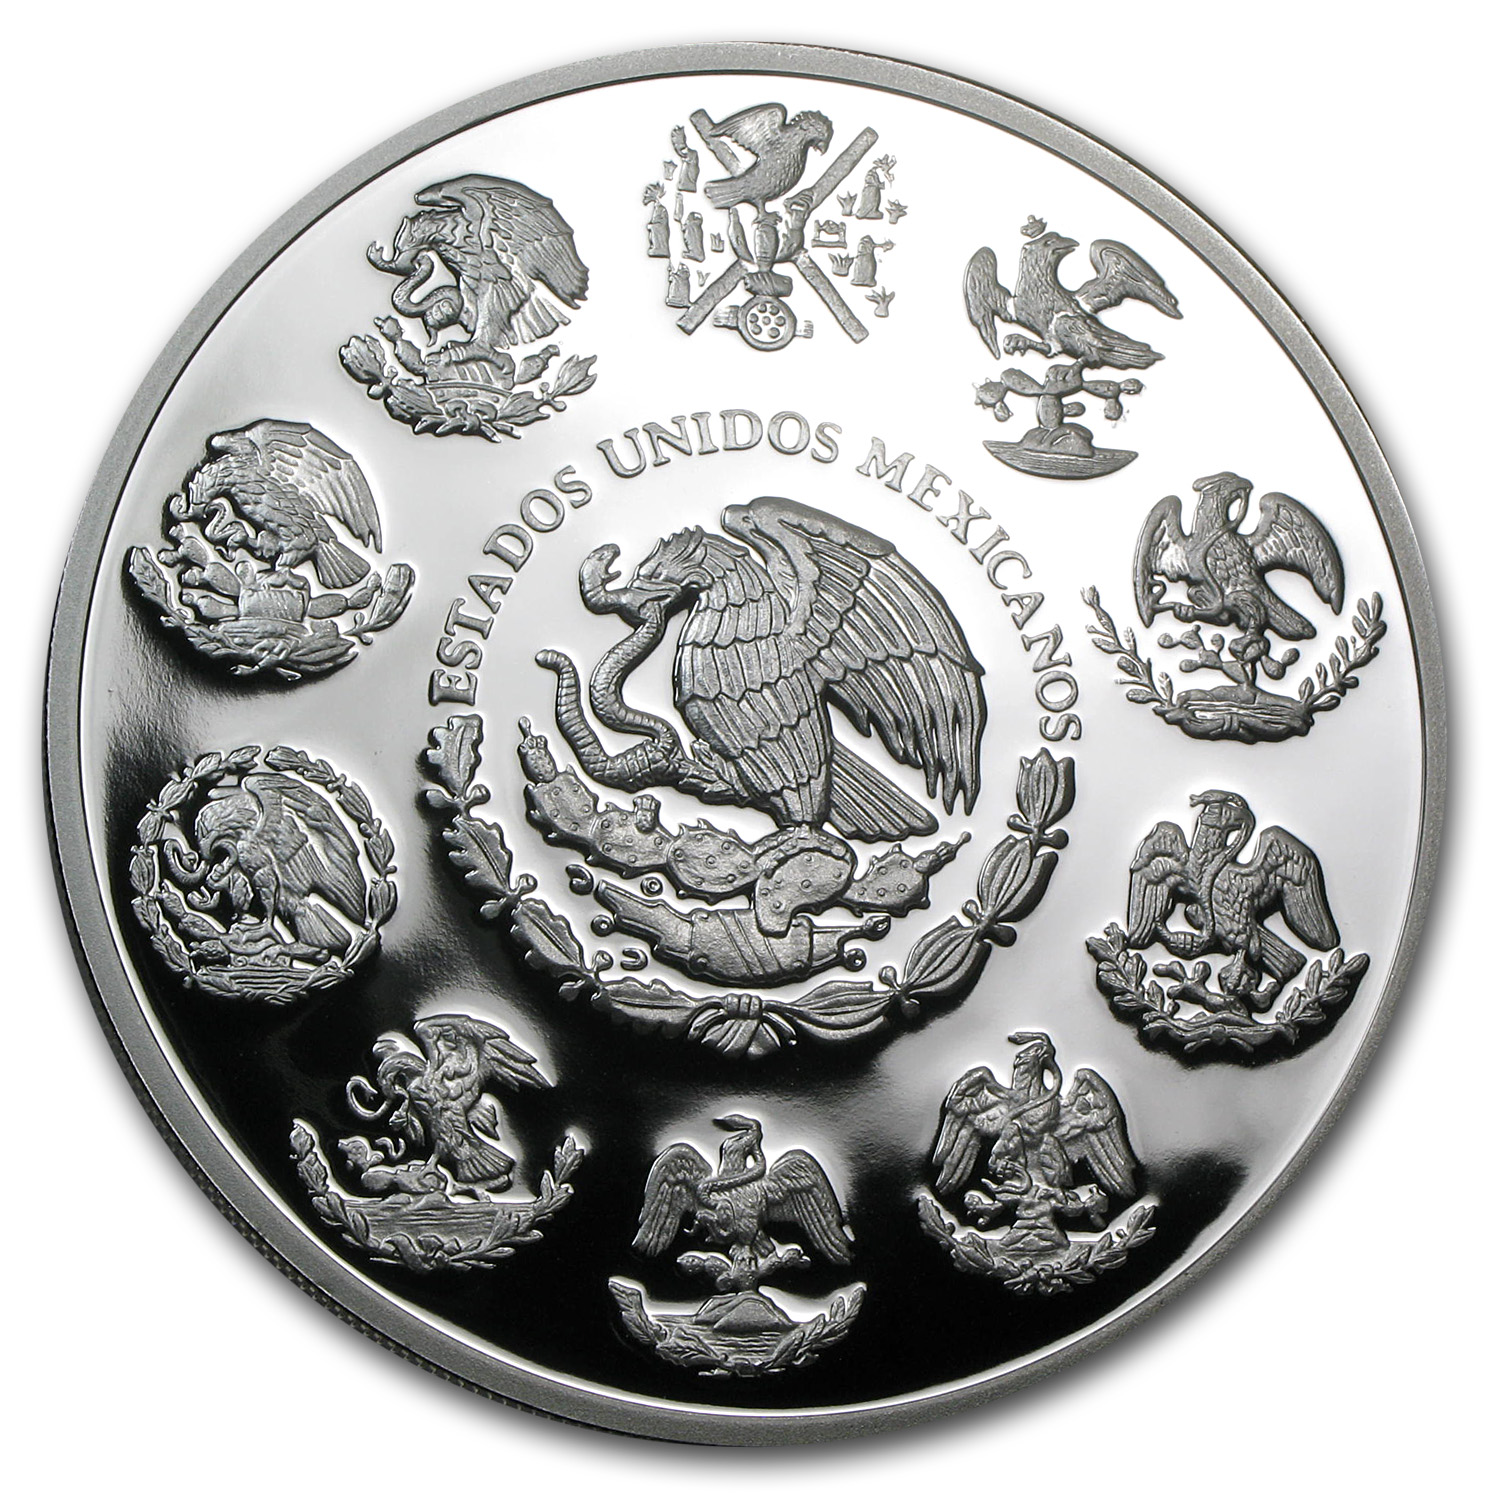 2013 5 oz Silver Mexican Libertad - Proof (In Capsule)